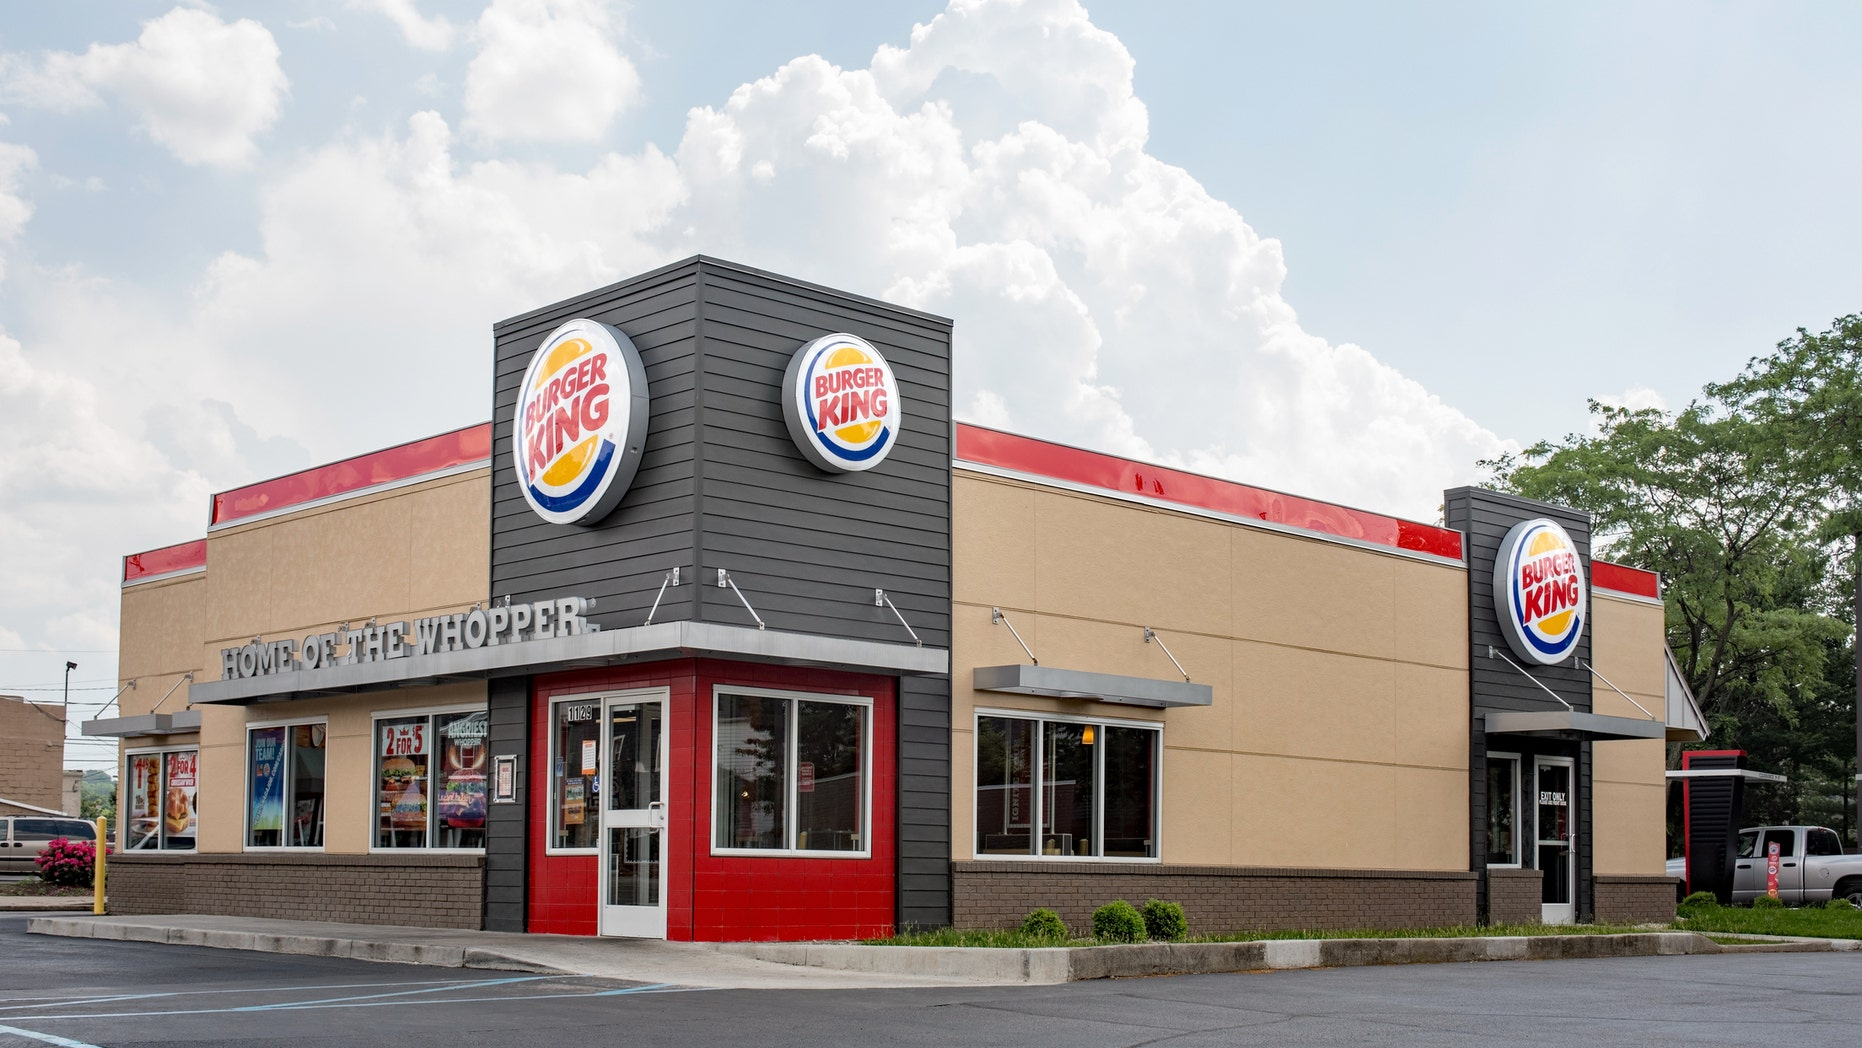 """Dayton, Ohio, USA - May 29, 2016: The newest Burger King """"20/20"""" restaurant design with a sleek, contemporary, futuristic industrial-look theme includes brick cladding, manicured landscaping and a covered drive-thru order point with digital order screens. The new design was first introduced in USA in April 1, 2010."""